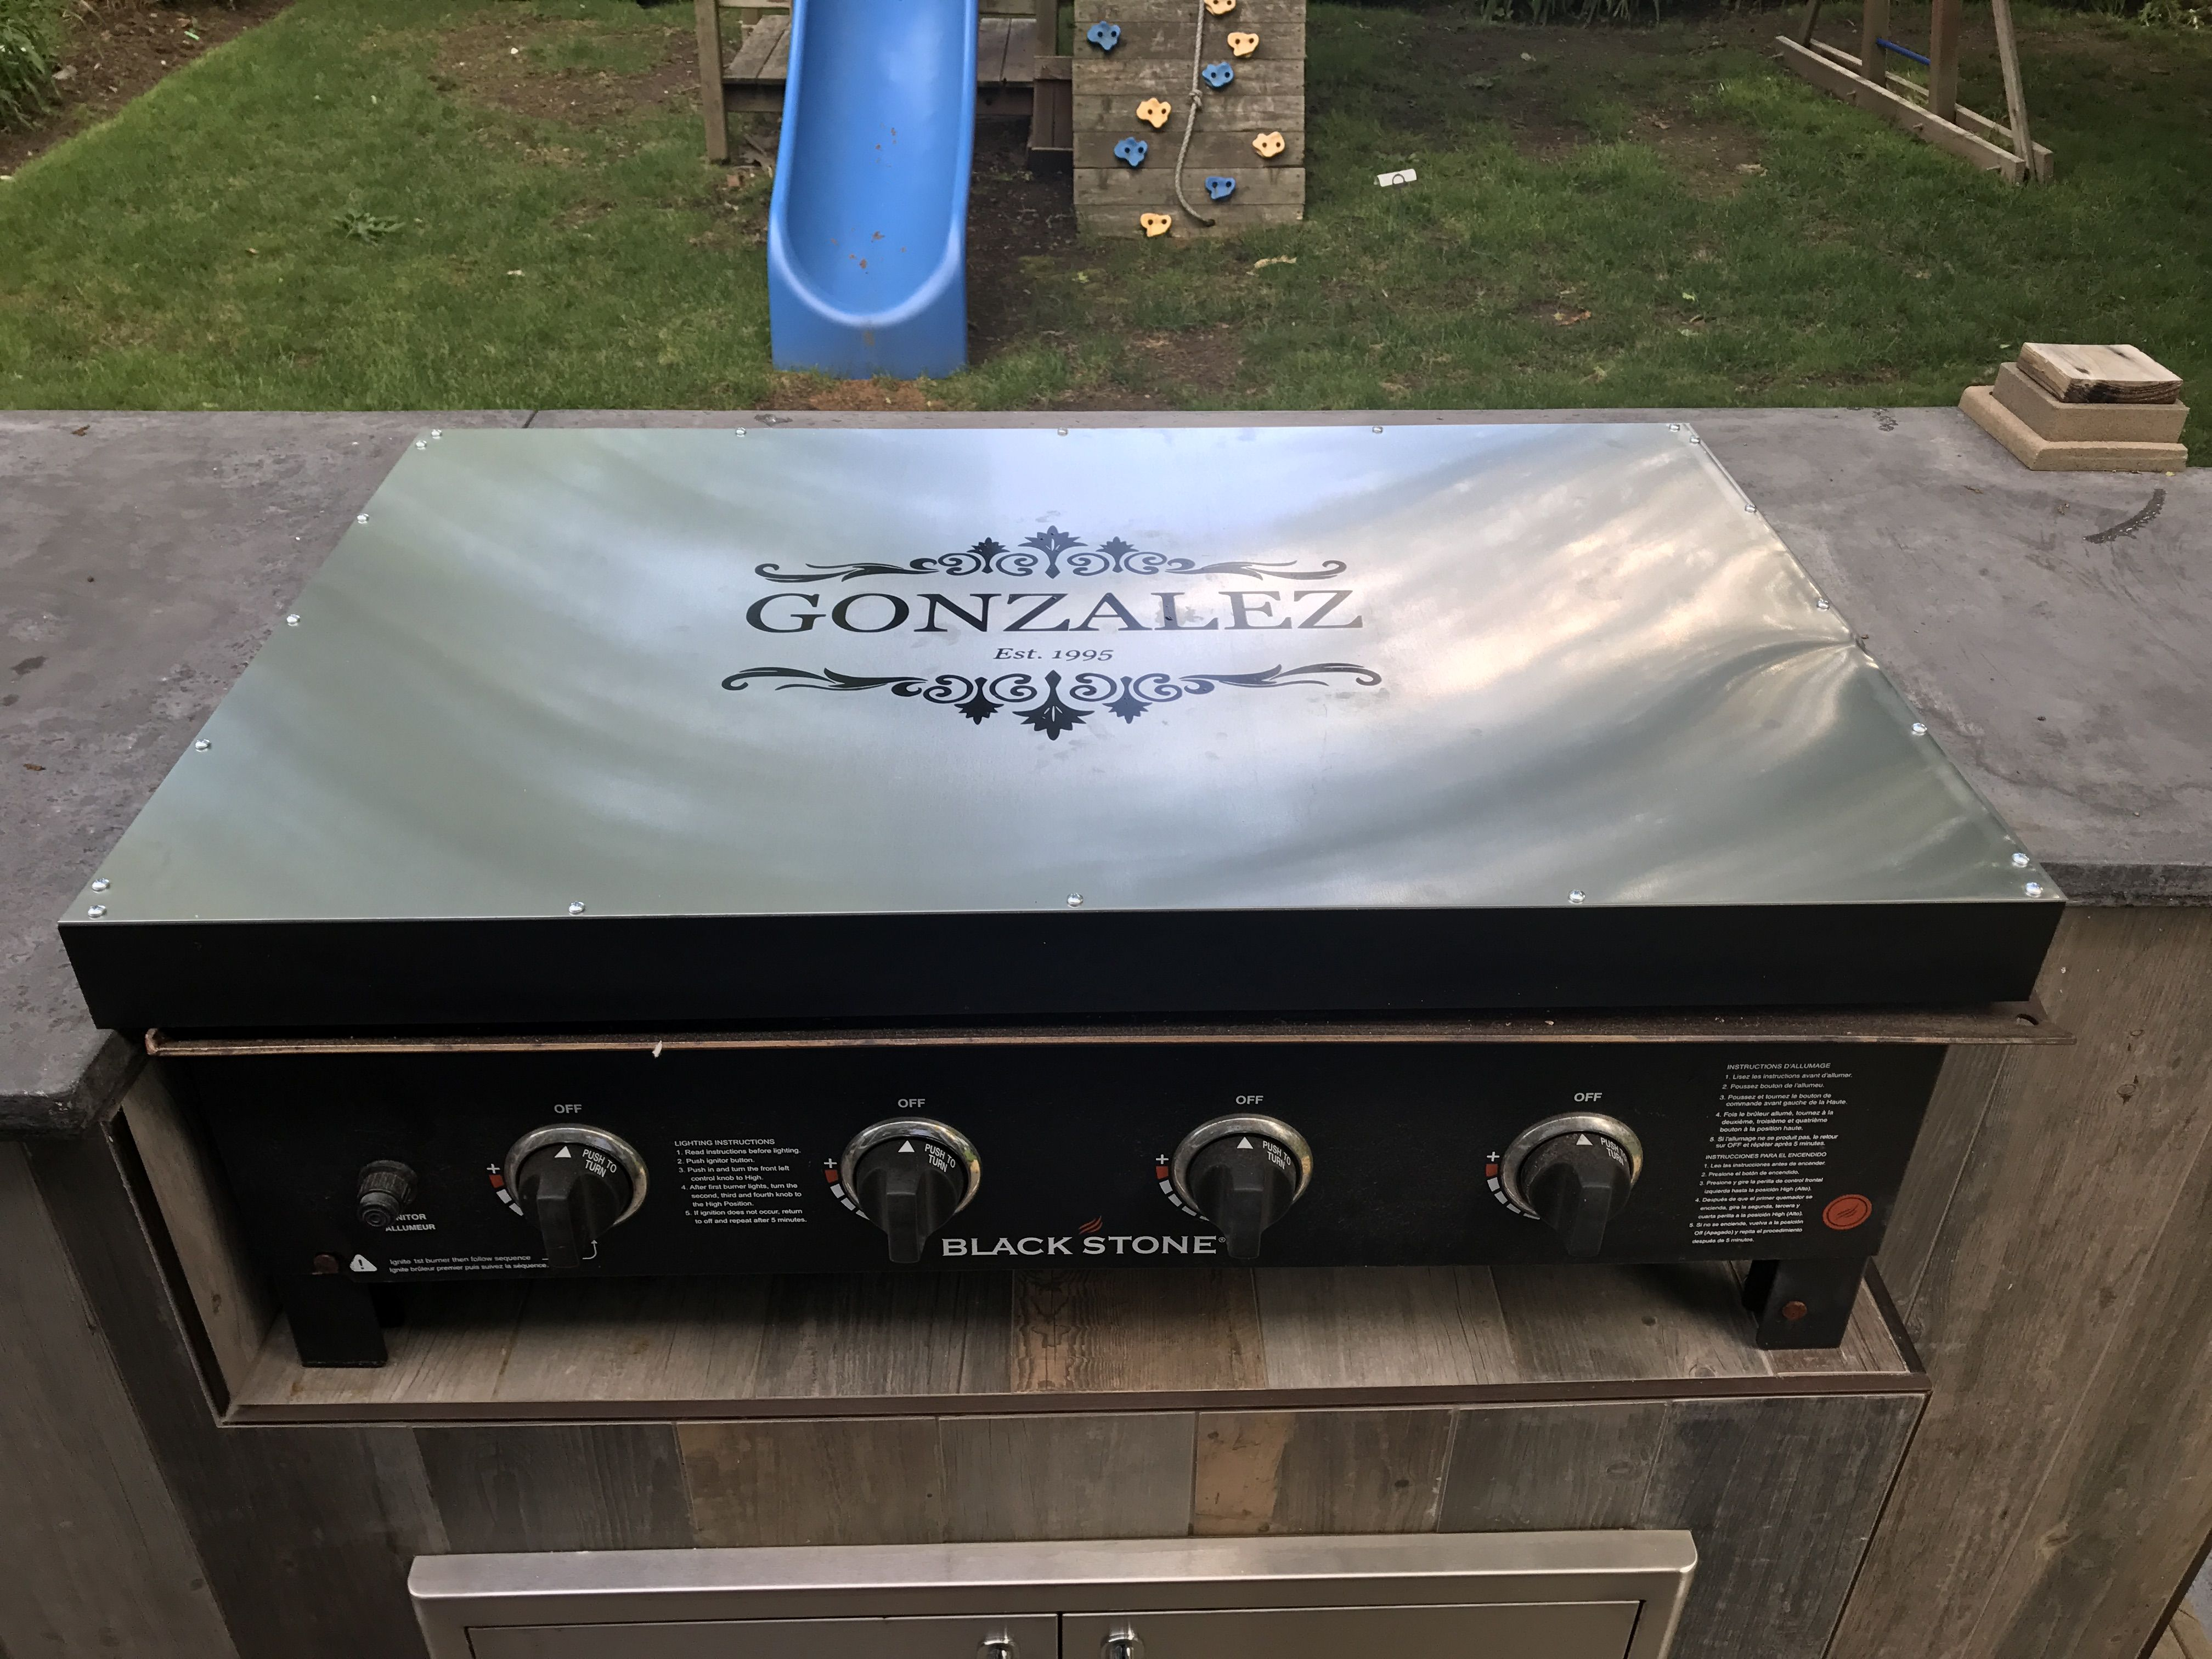 Stove Top Cover For Blackstone Griddle Made Out Of Aluminium Sheet For The Top With A Vinyl Decal And Composite Outdoor Bbq Kitchen Outdoor Kitchen Outdoor Bbq